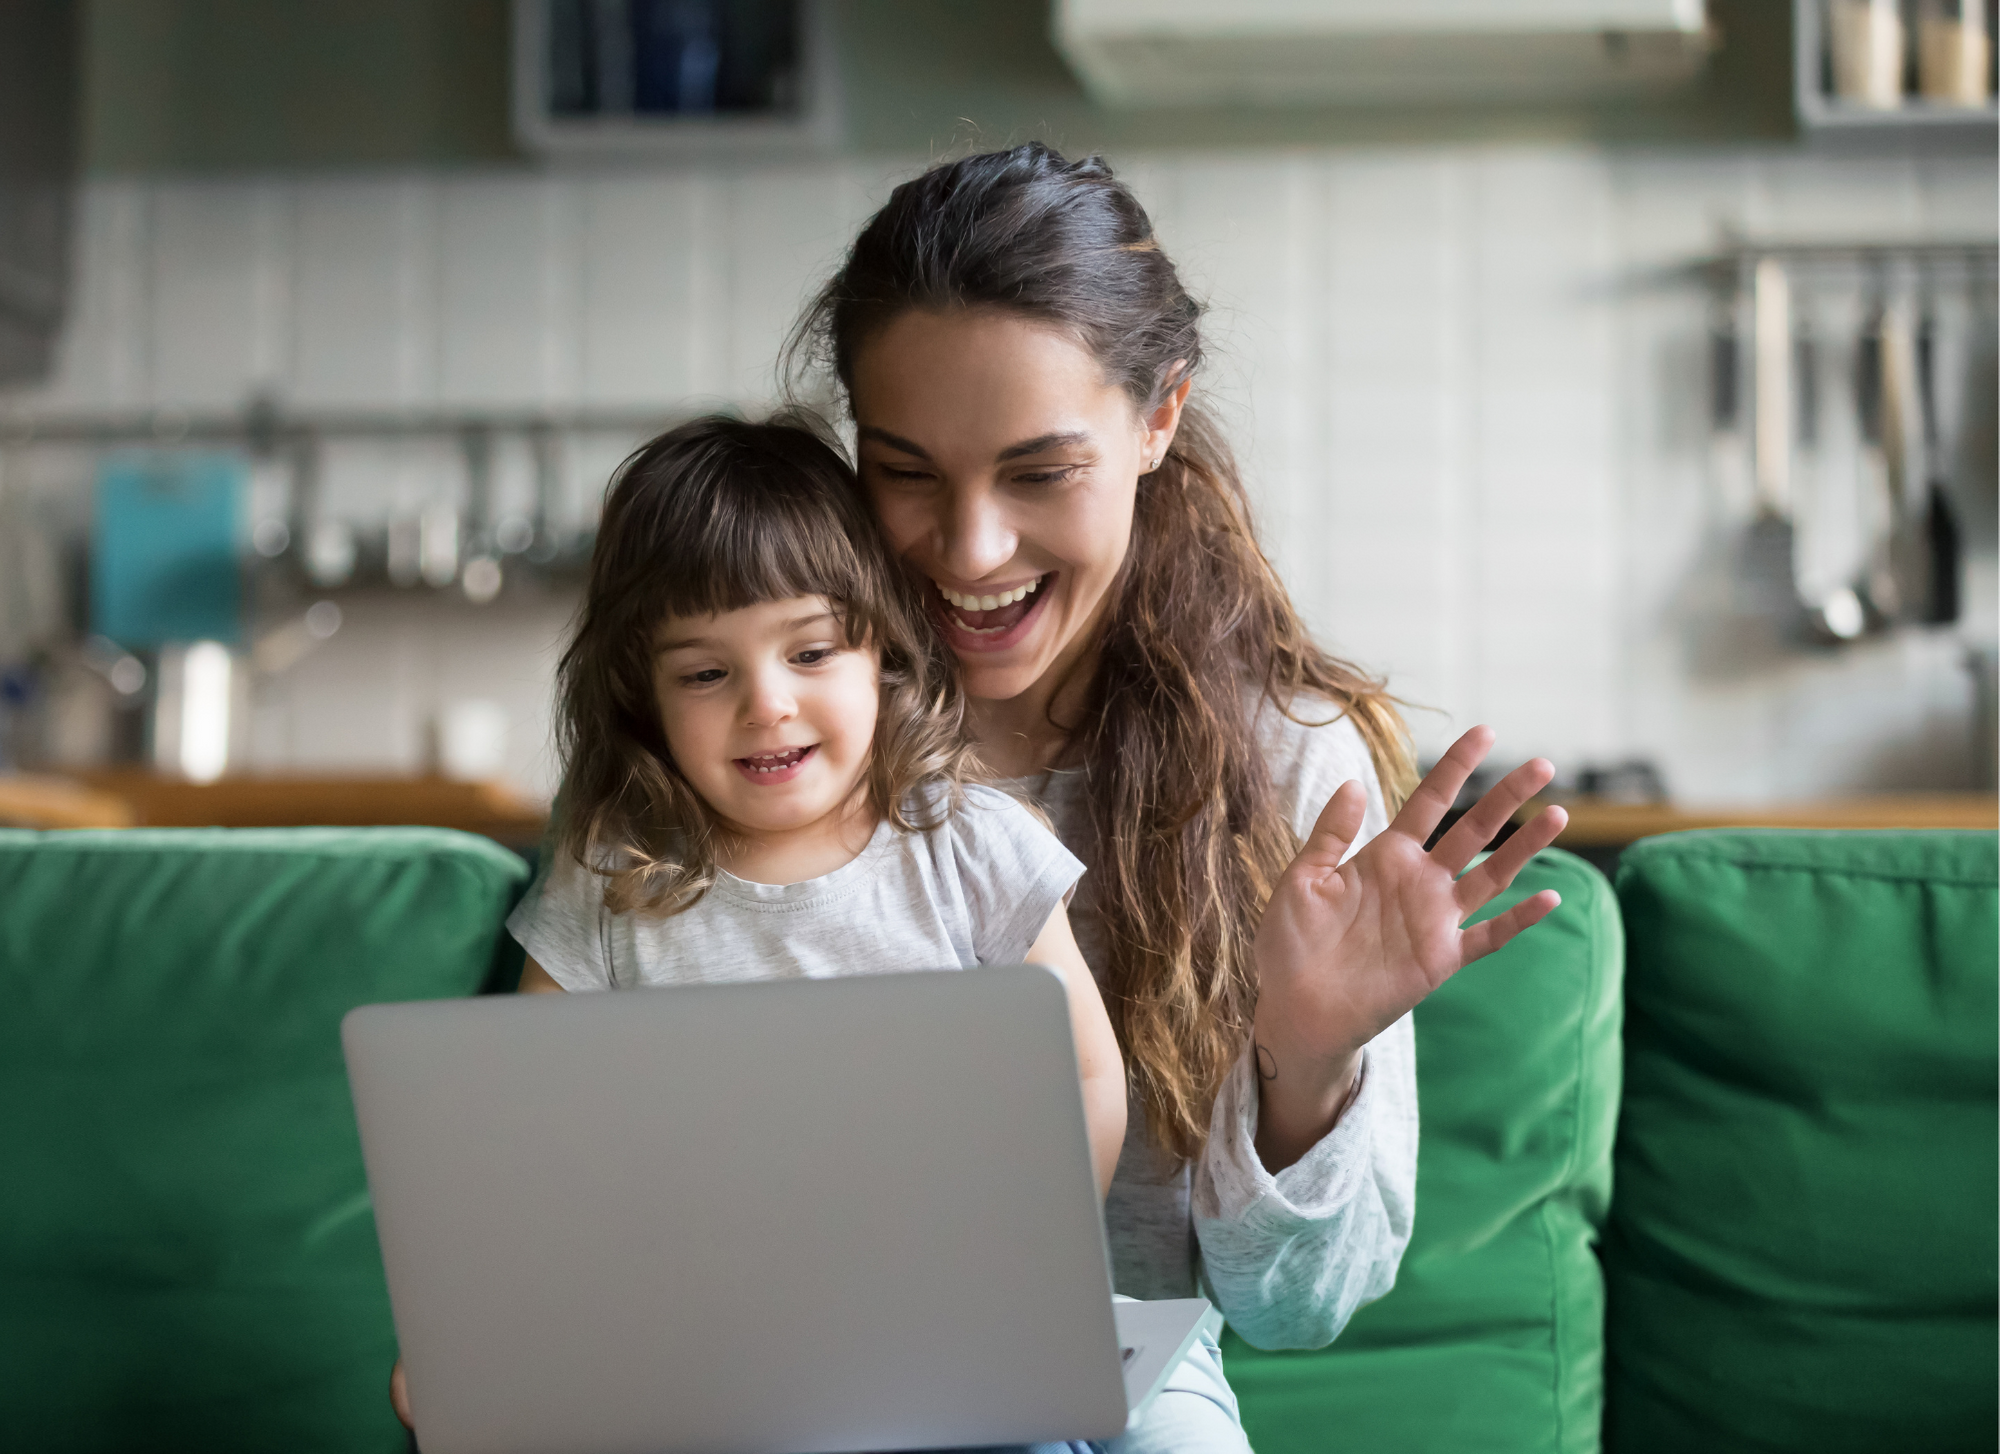 4 ways to promote socialization of toddlers